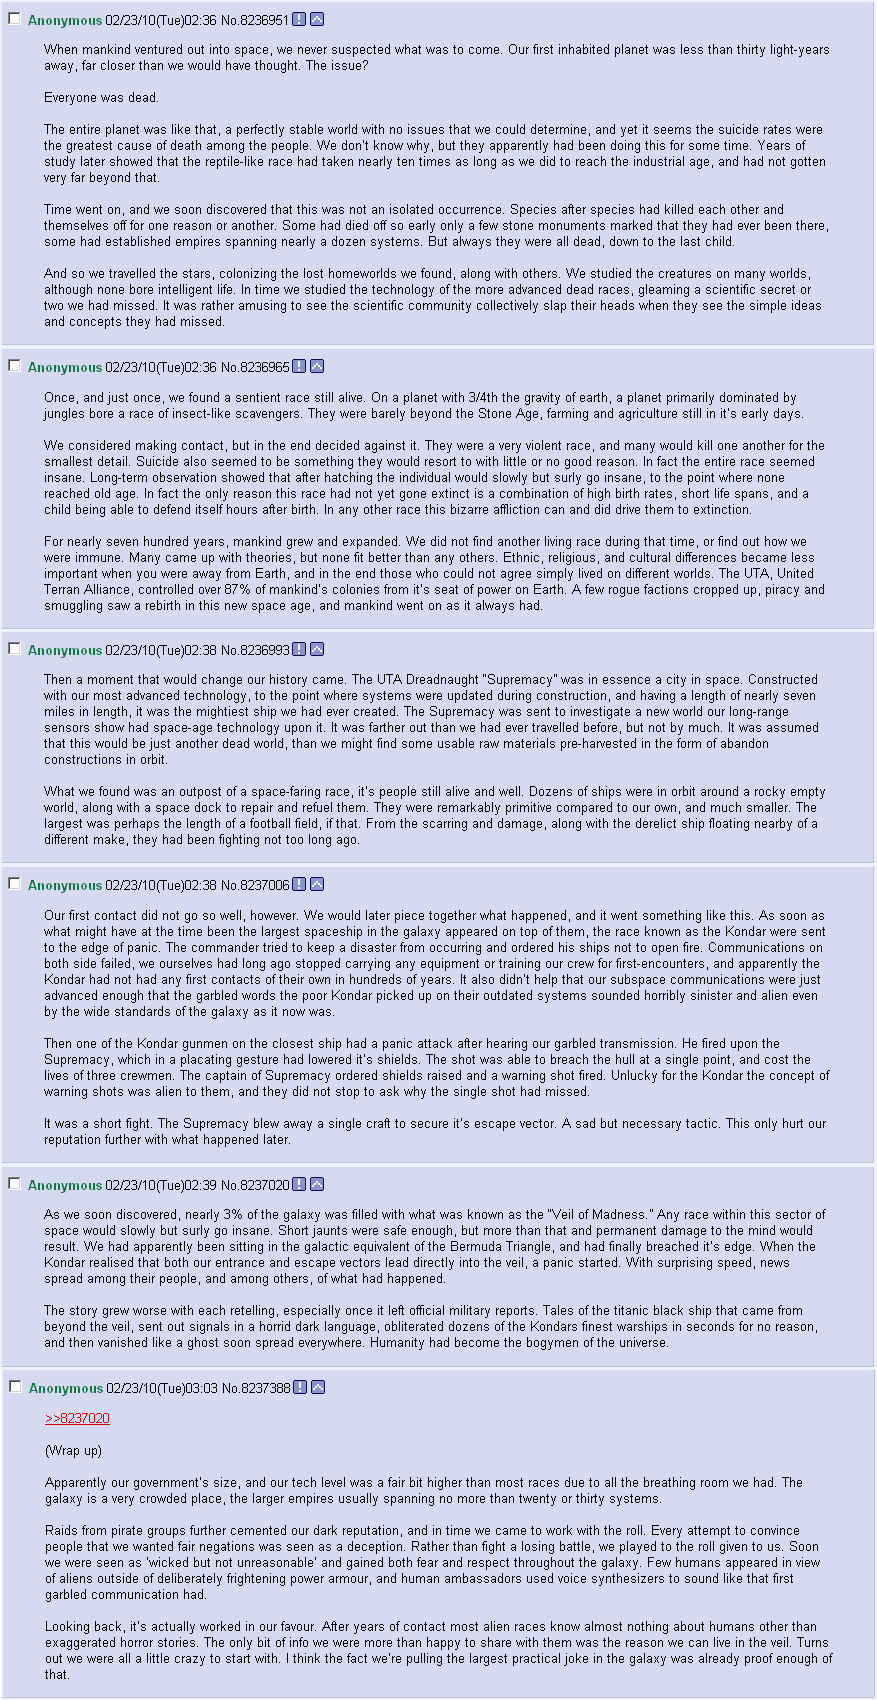 The Veil of Madness Part 1. I found a lot of these stories in replies to comments on several posts anyway this channel hasn't seen much of an update in a while